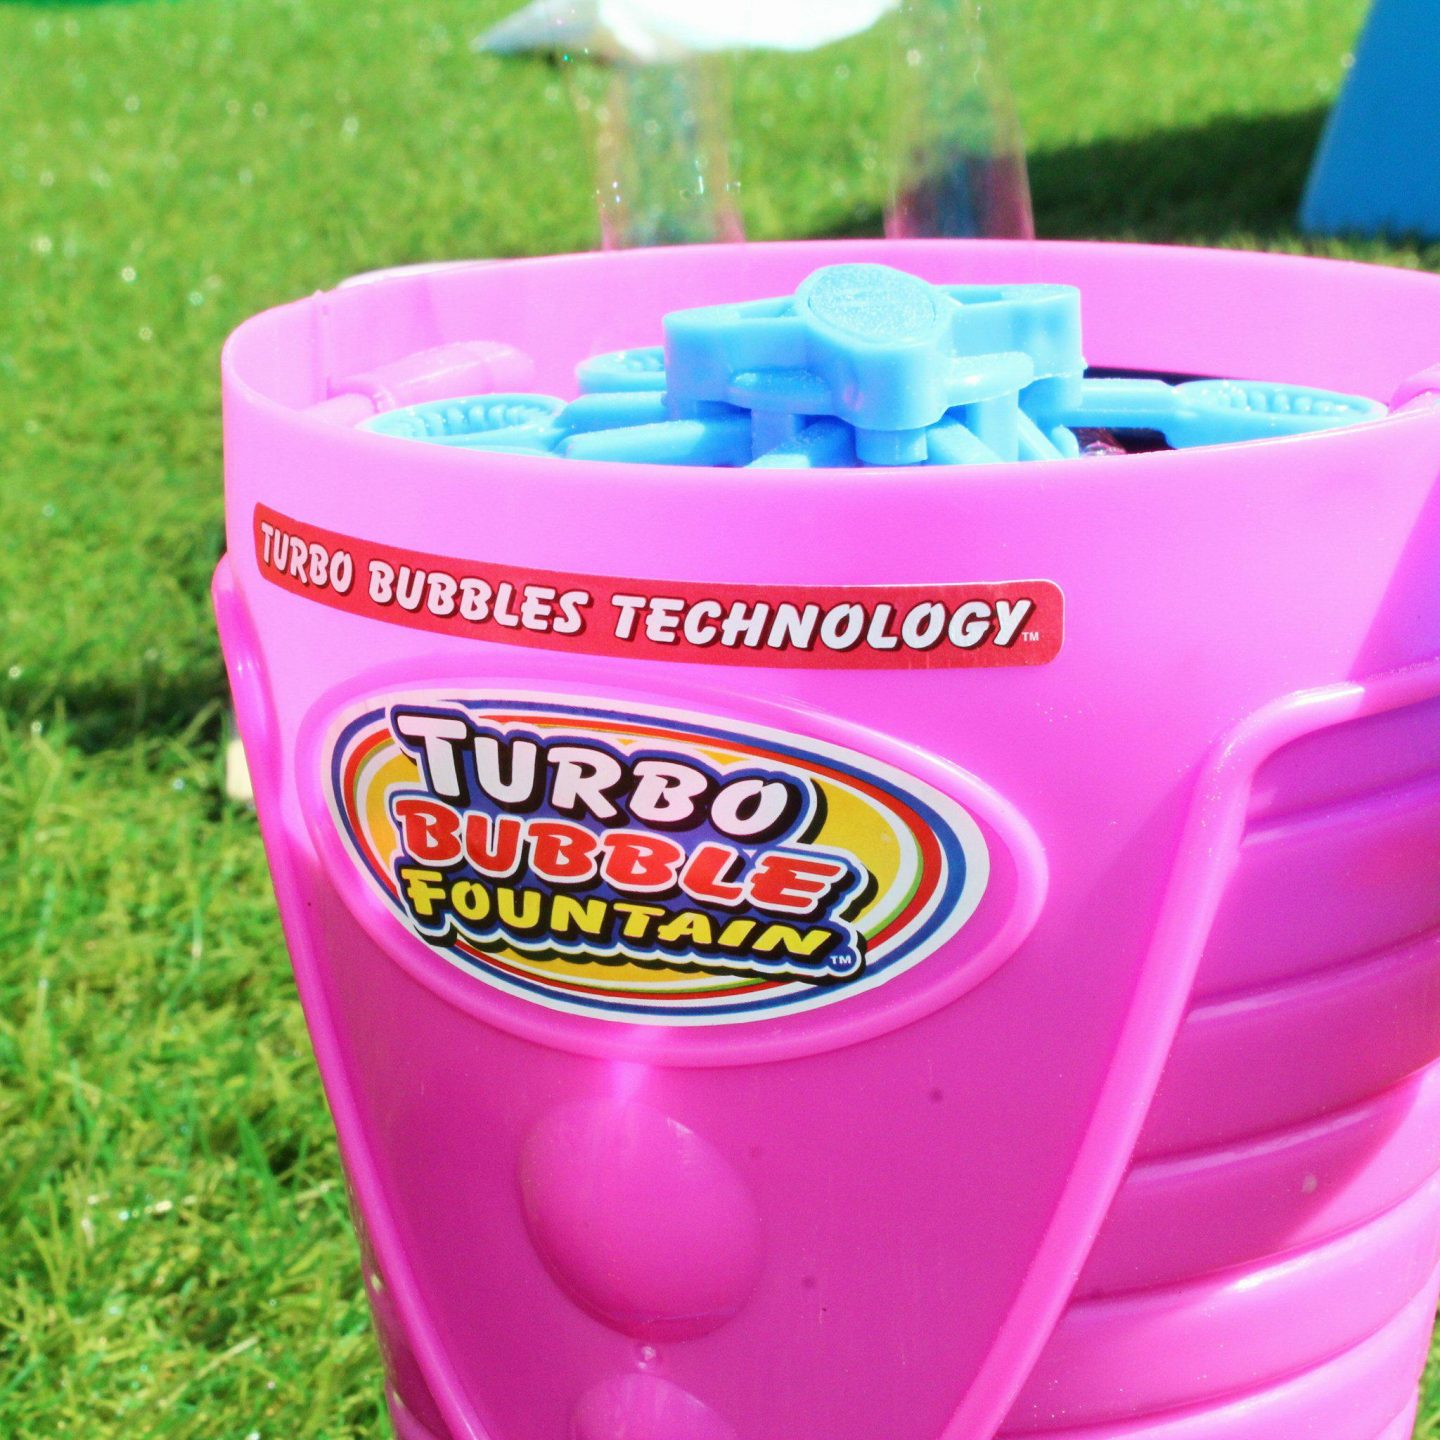 Turbo Bubble Fountain